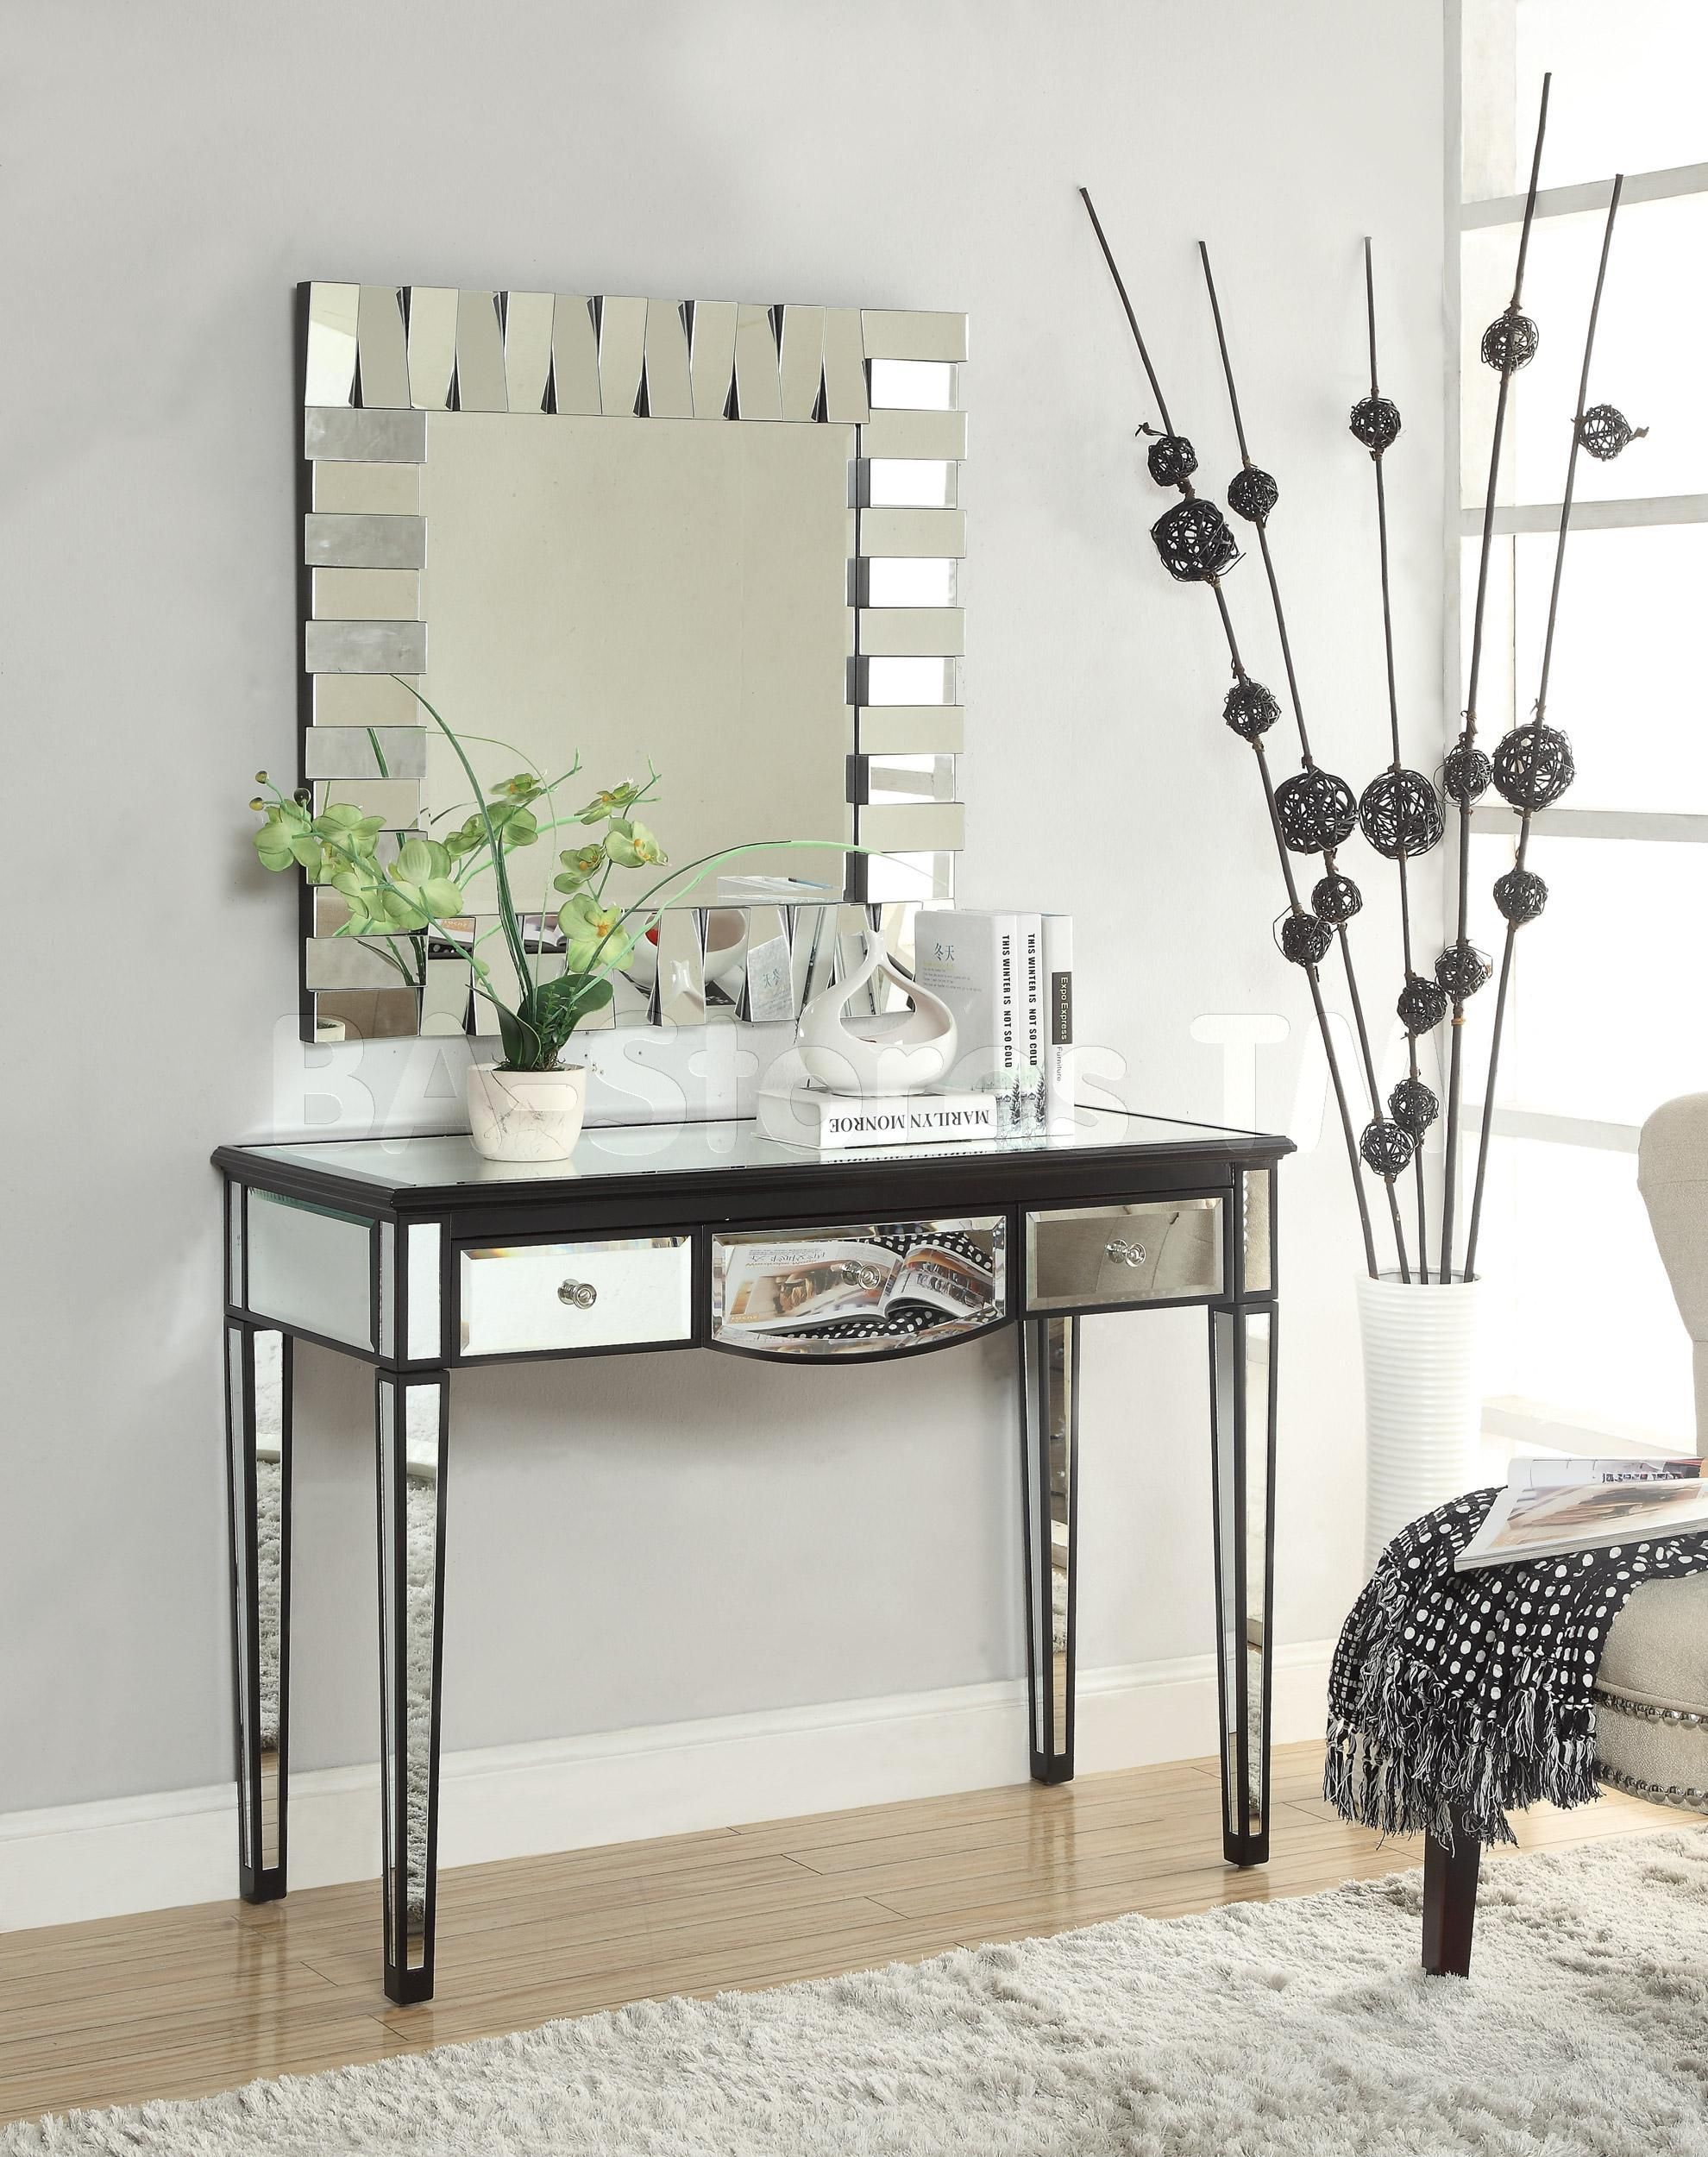 Table Small Mirrored Console Table Design Mirrored Console Table Very